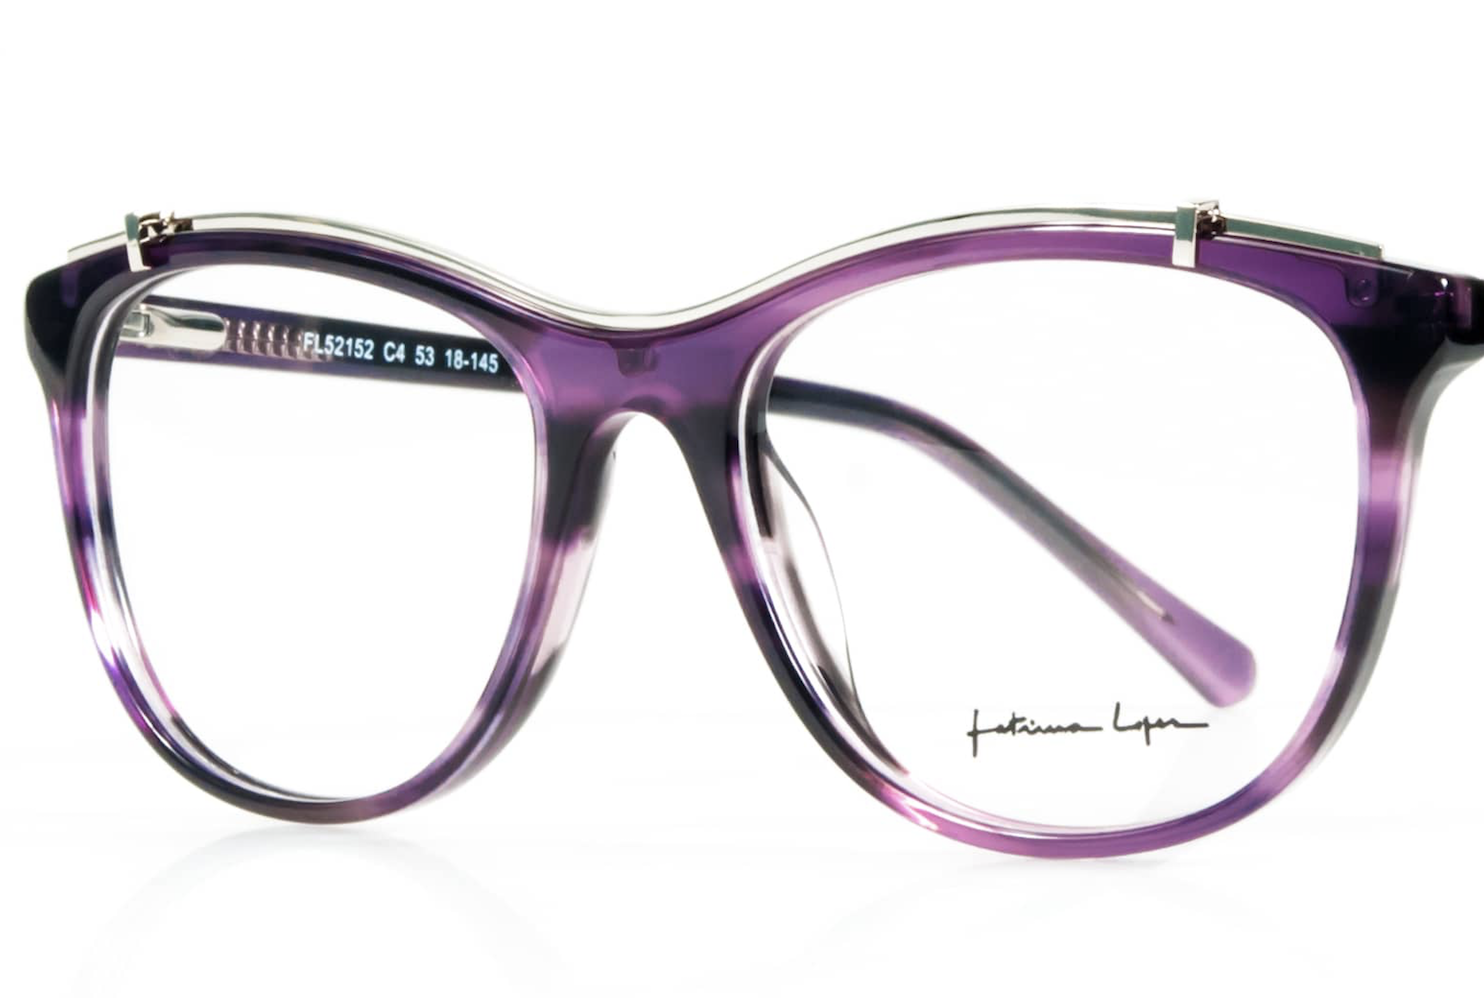 Glasses FL52152 C4 1